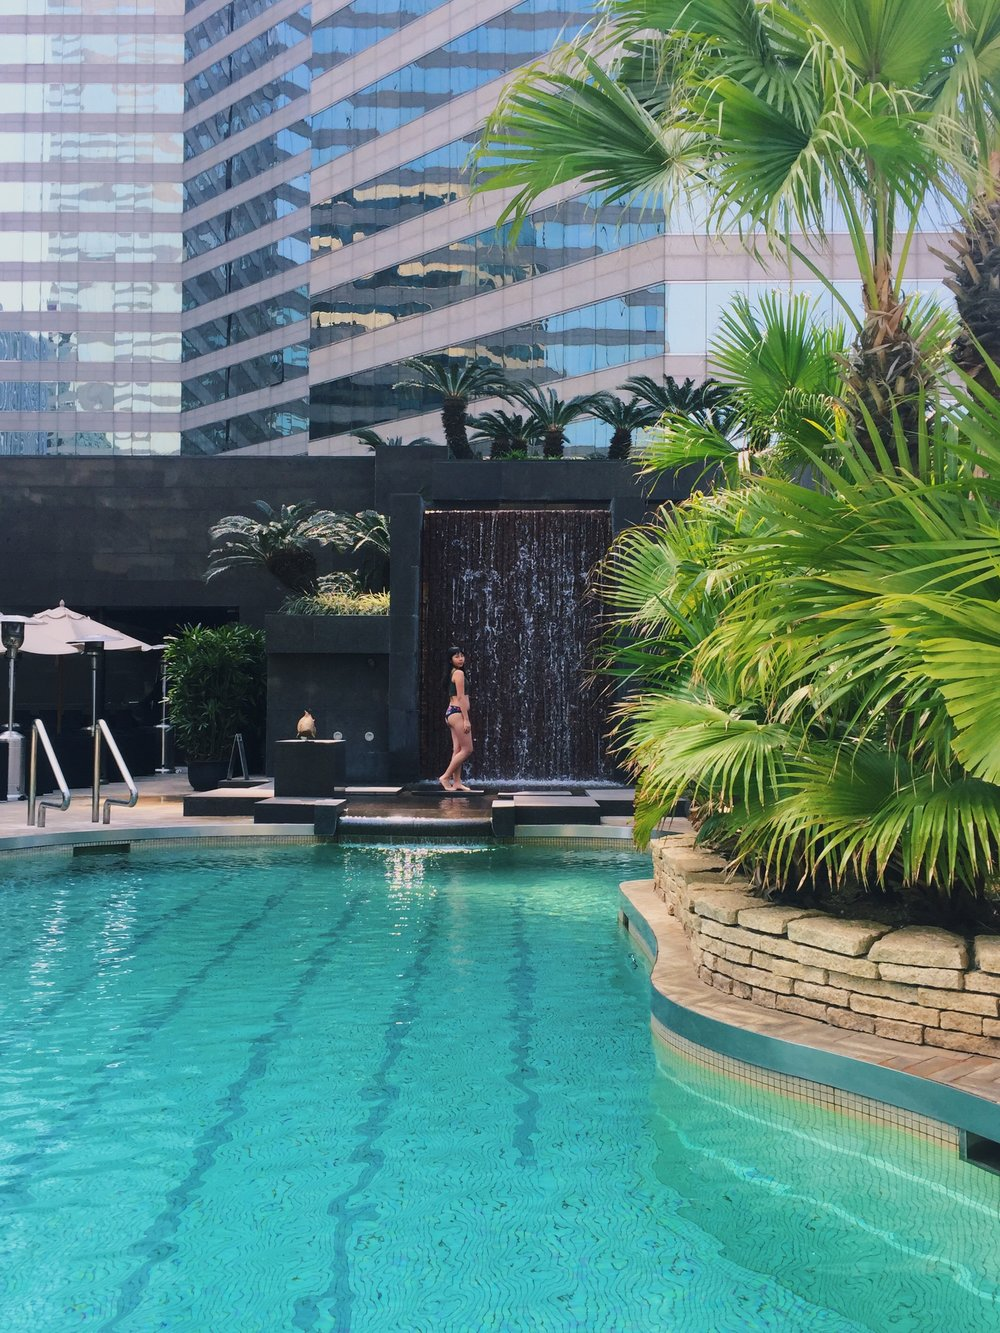 I'm amazed when I saw this swimming pool as it is in the middle of skyscrapers, just like a mini tropical garden for you to chill and escape for a while, but the thing is, I can't swim...